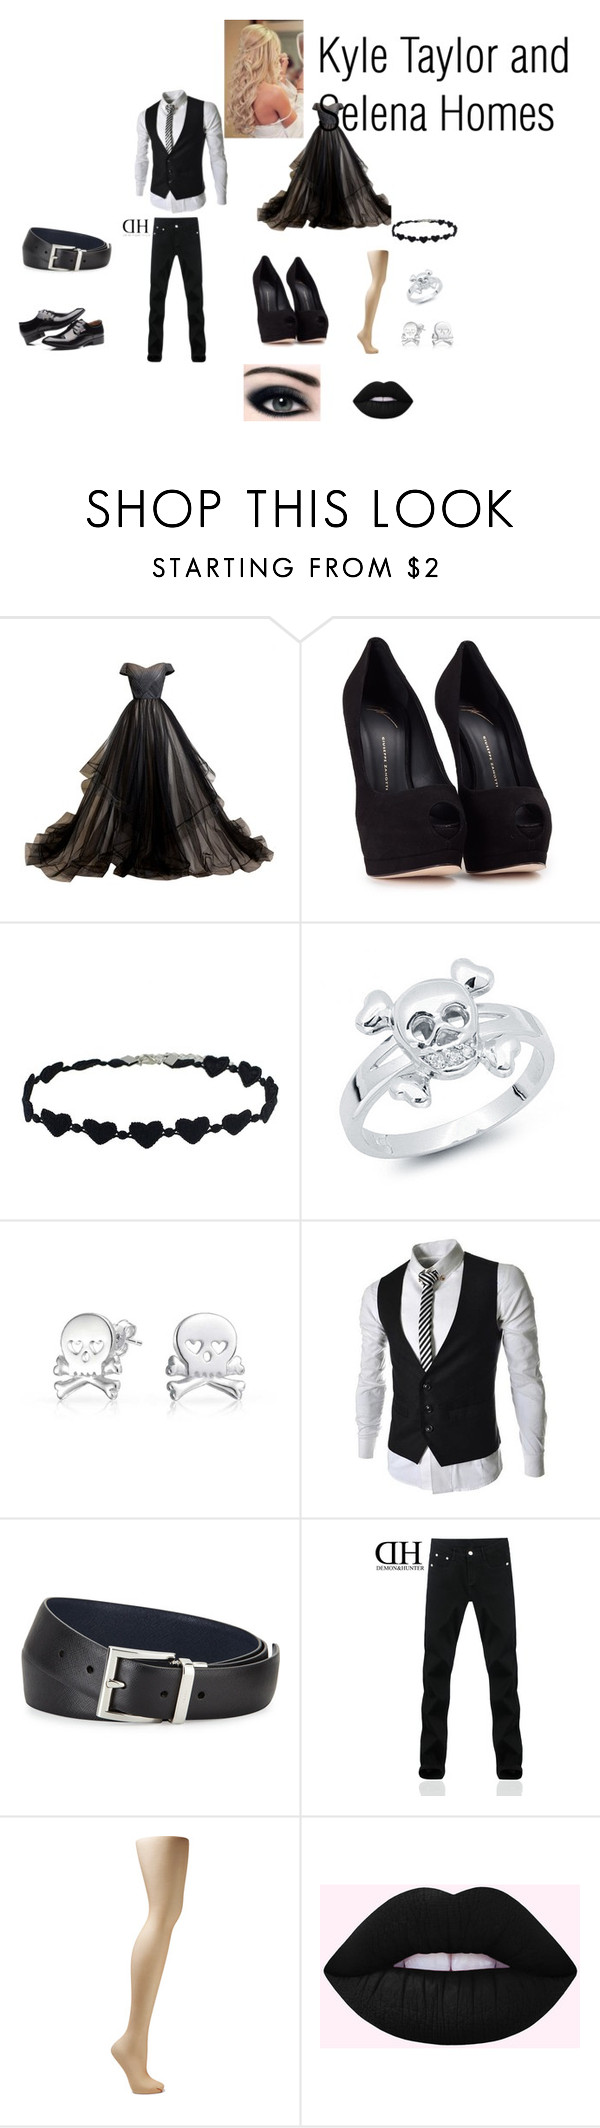 """""""Kyle and Selena"""" by md121728 on Polyvore featuring Giuseppe Zanotti, Bling Jewelry, Prada and Wolford"""